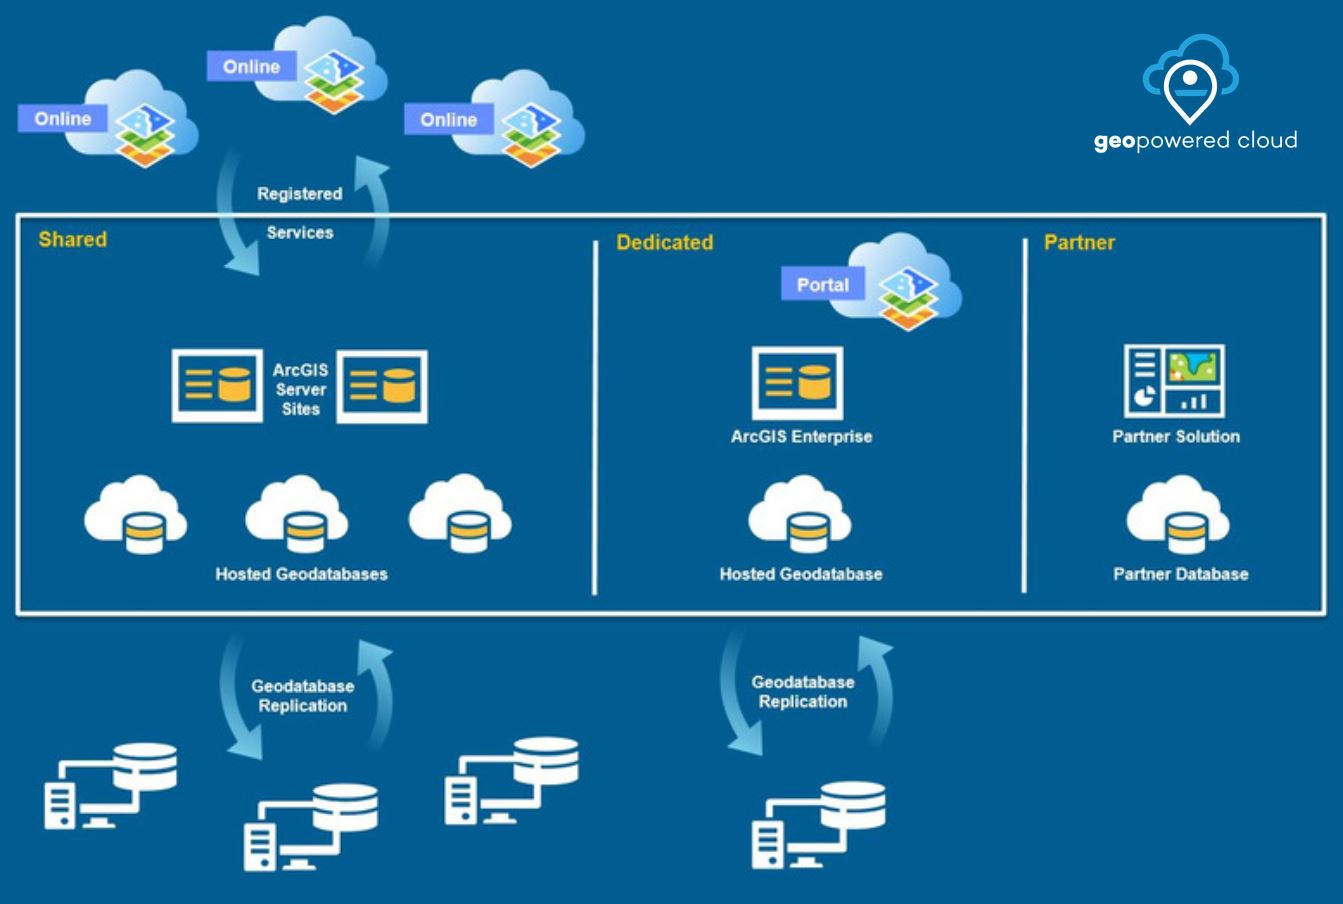 Vision of The GEOPowered Cloud - An Enterprise GIS Deployment Platform